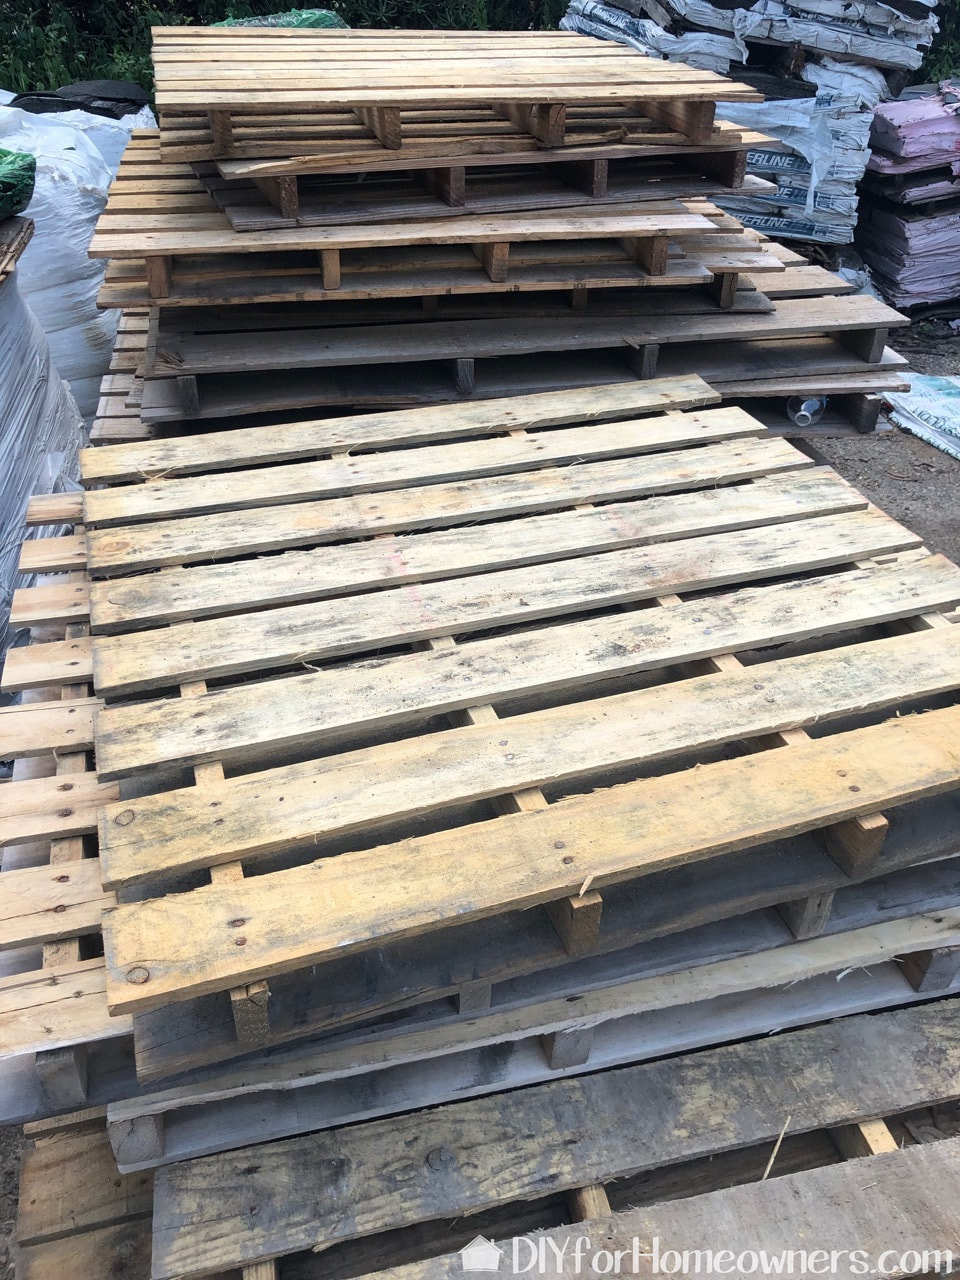 Piles of pallets ready for DIY projects!